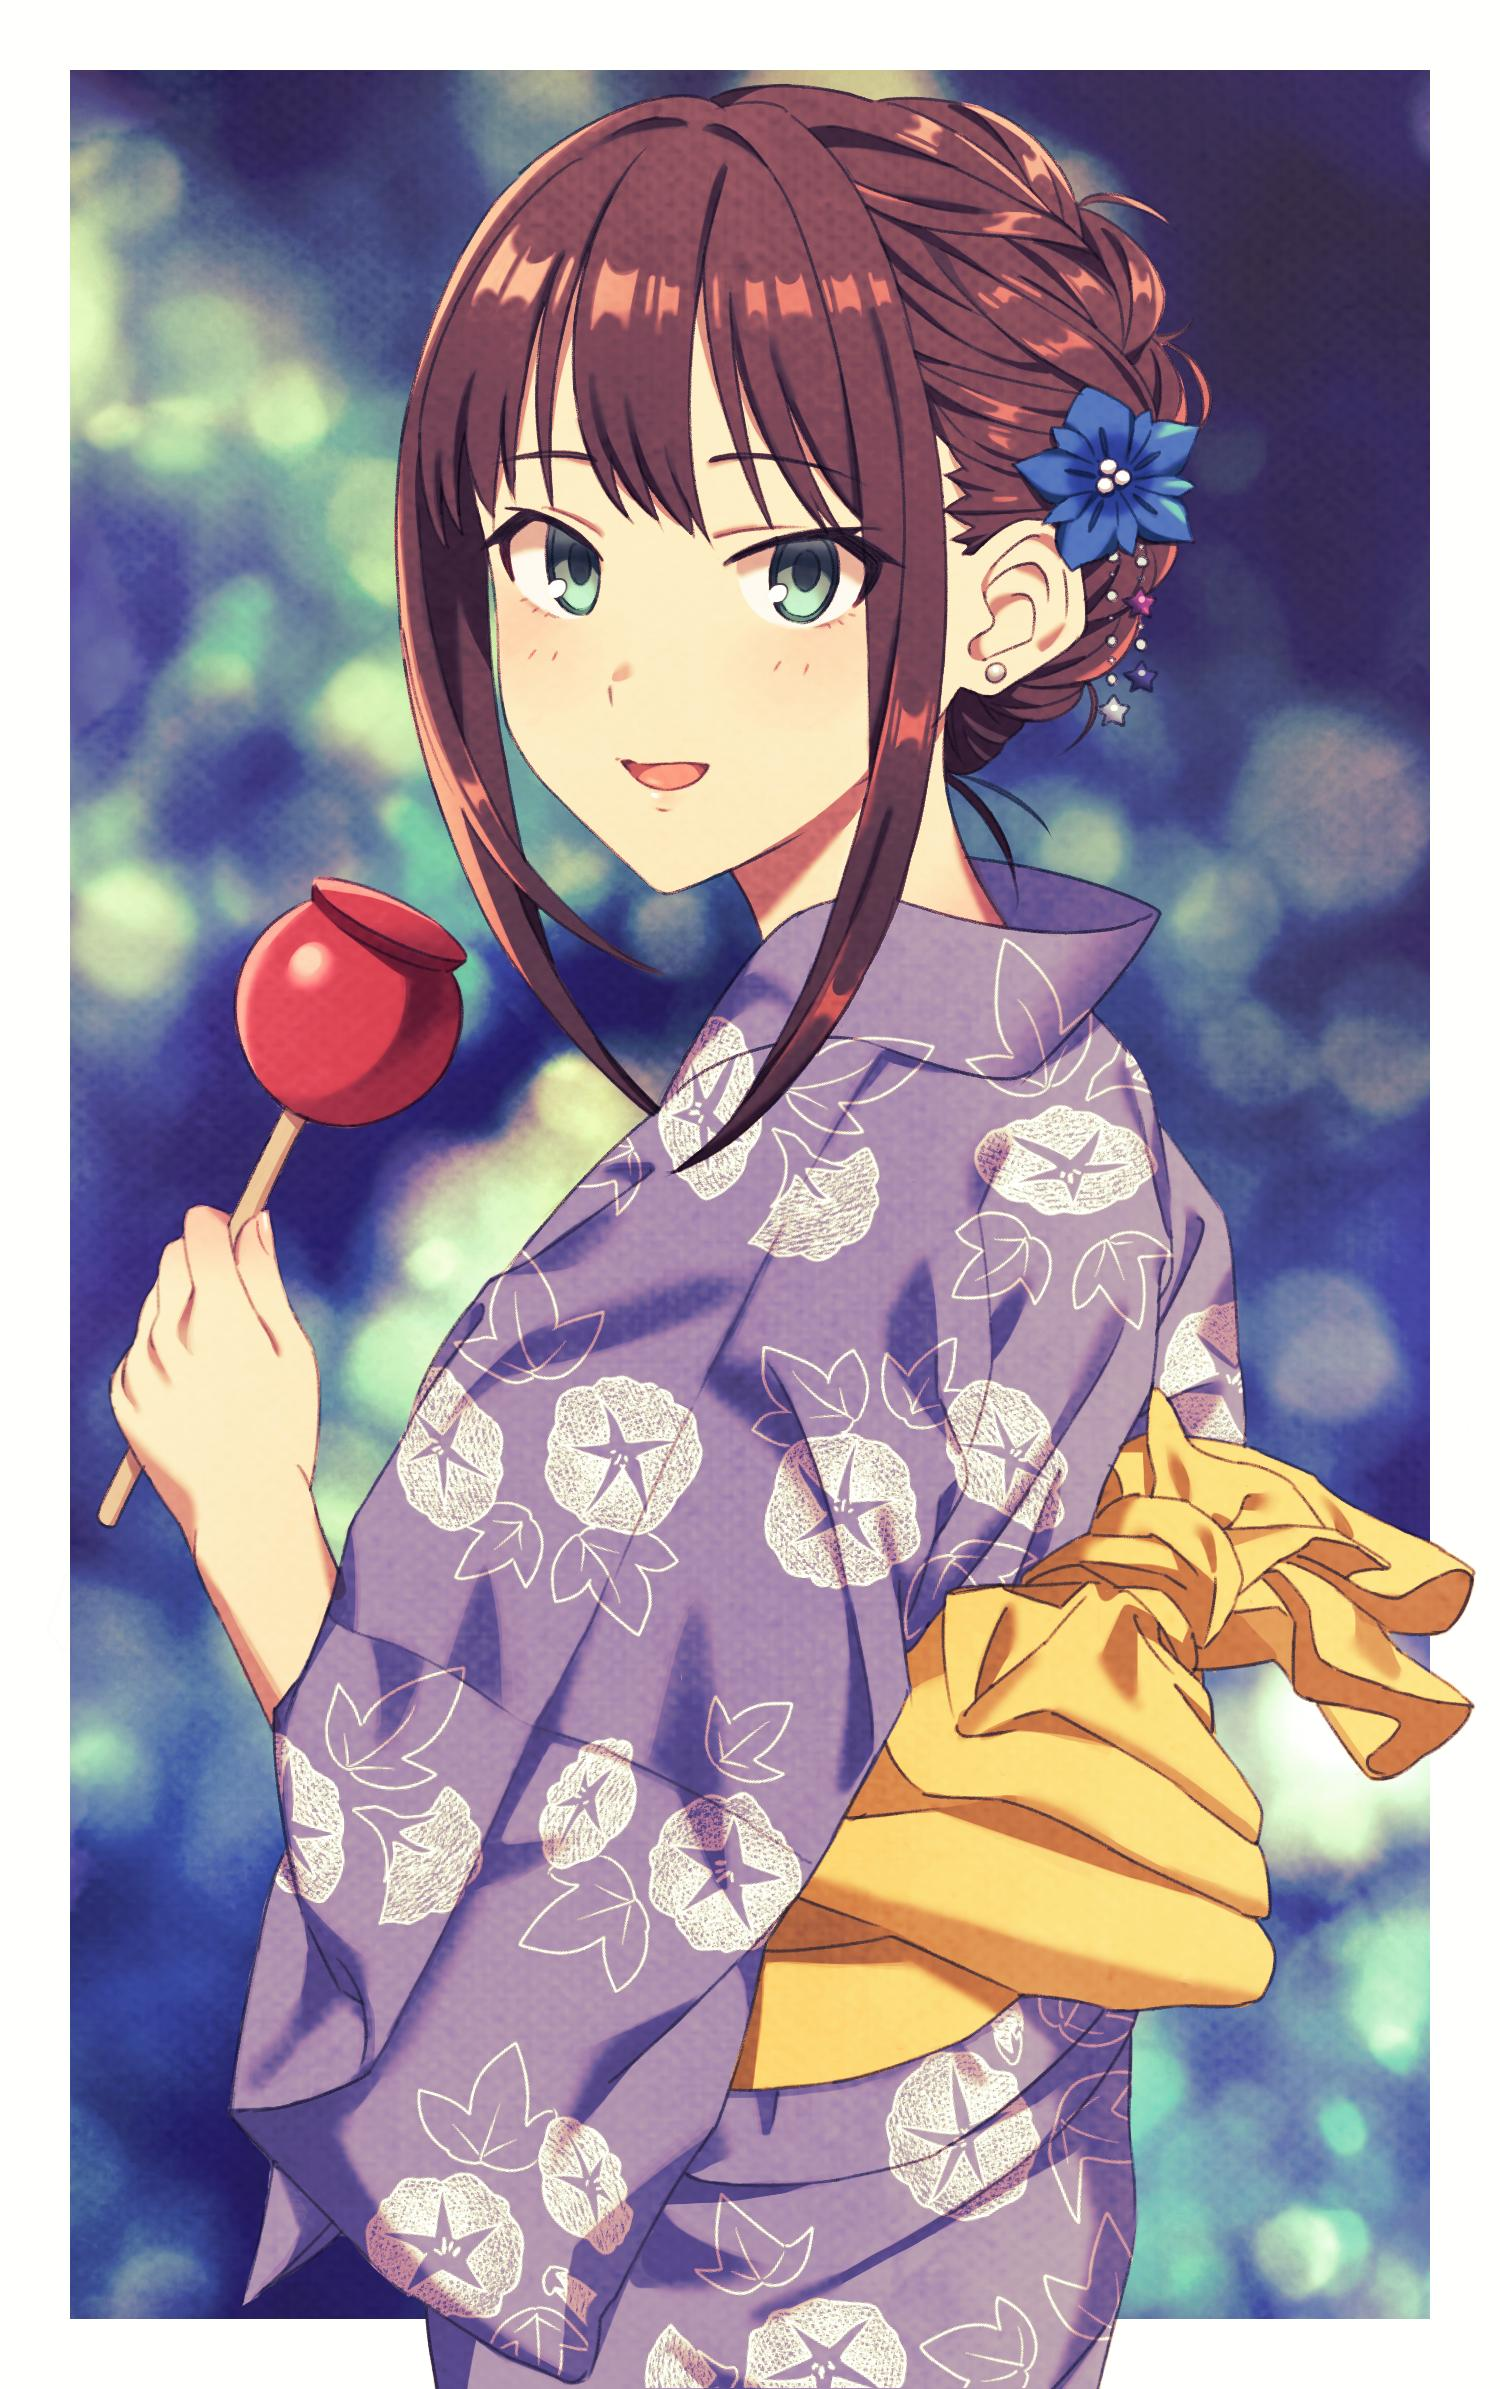 1girl brown_hair candy_apple earrings floral_print flower food green_eyes hair_flower hair_ornament highres idolmaster idolmaster_cinderella_girls iichiko_(398016) japanese_clothes jewelry kimono long_hair looking_back obi sash shibuya_rin solo tied_hair yukata